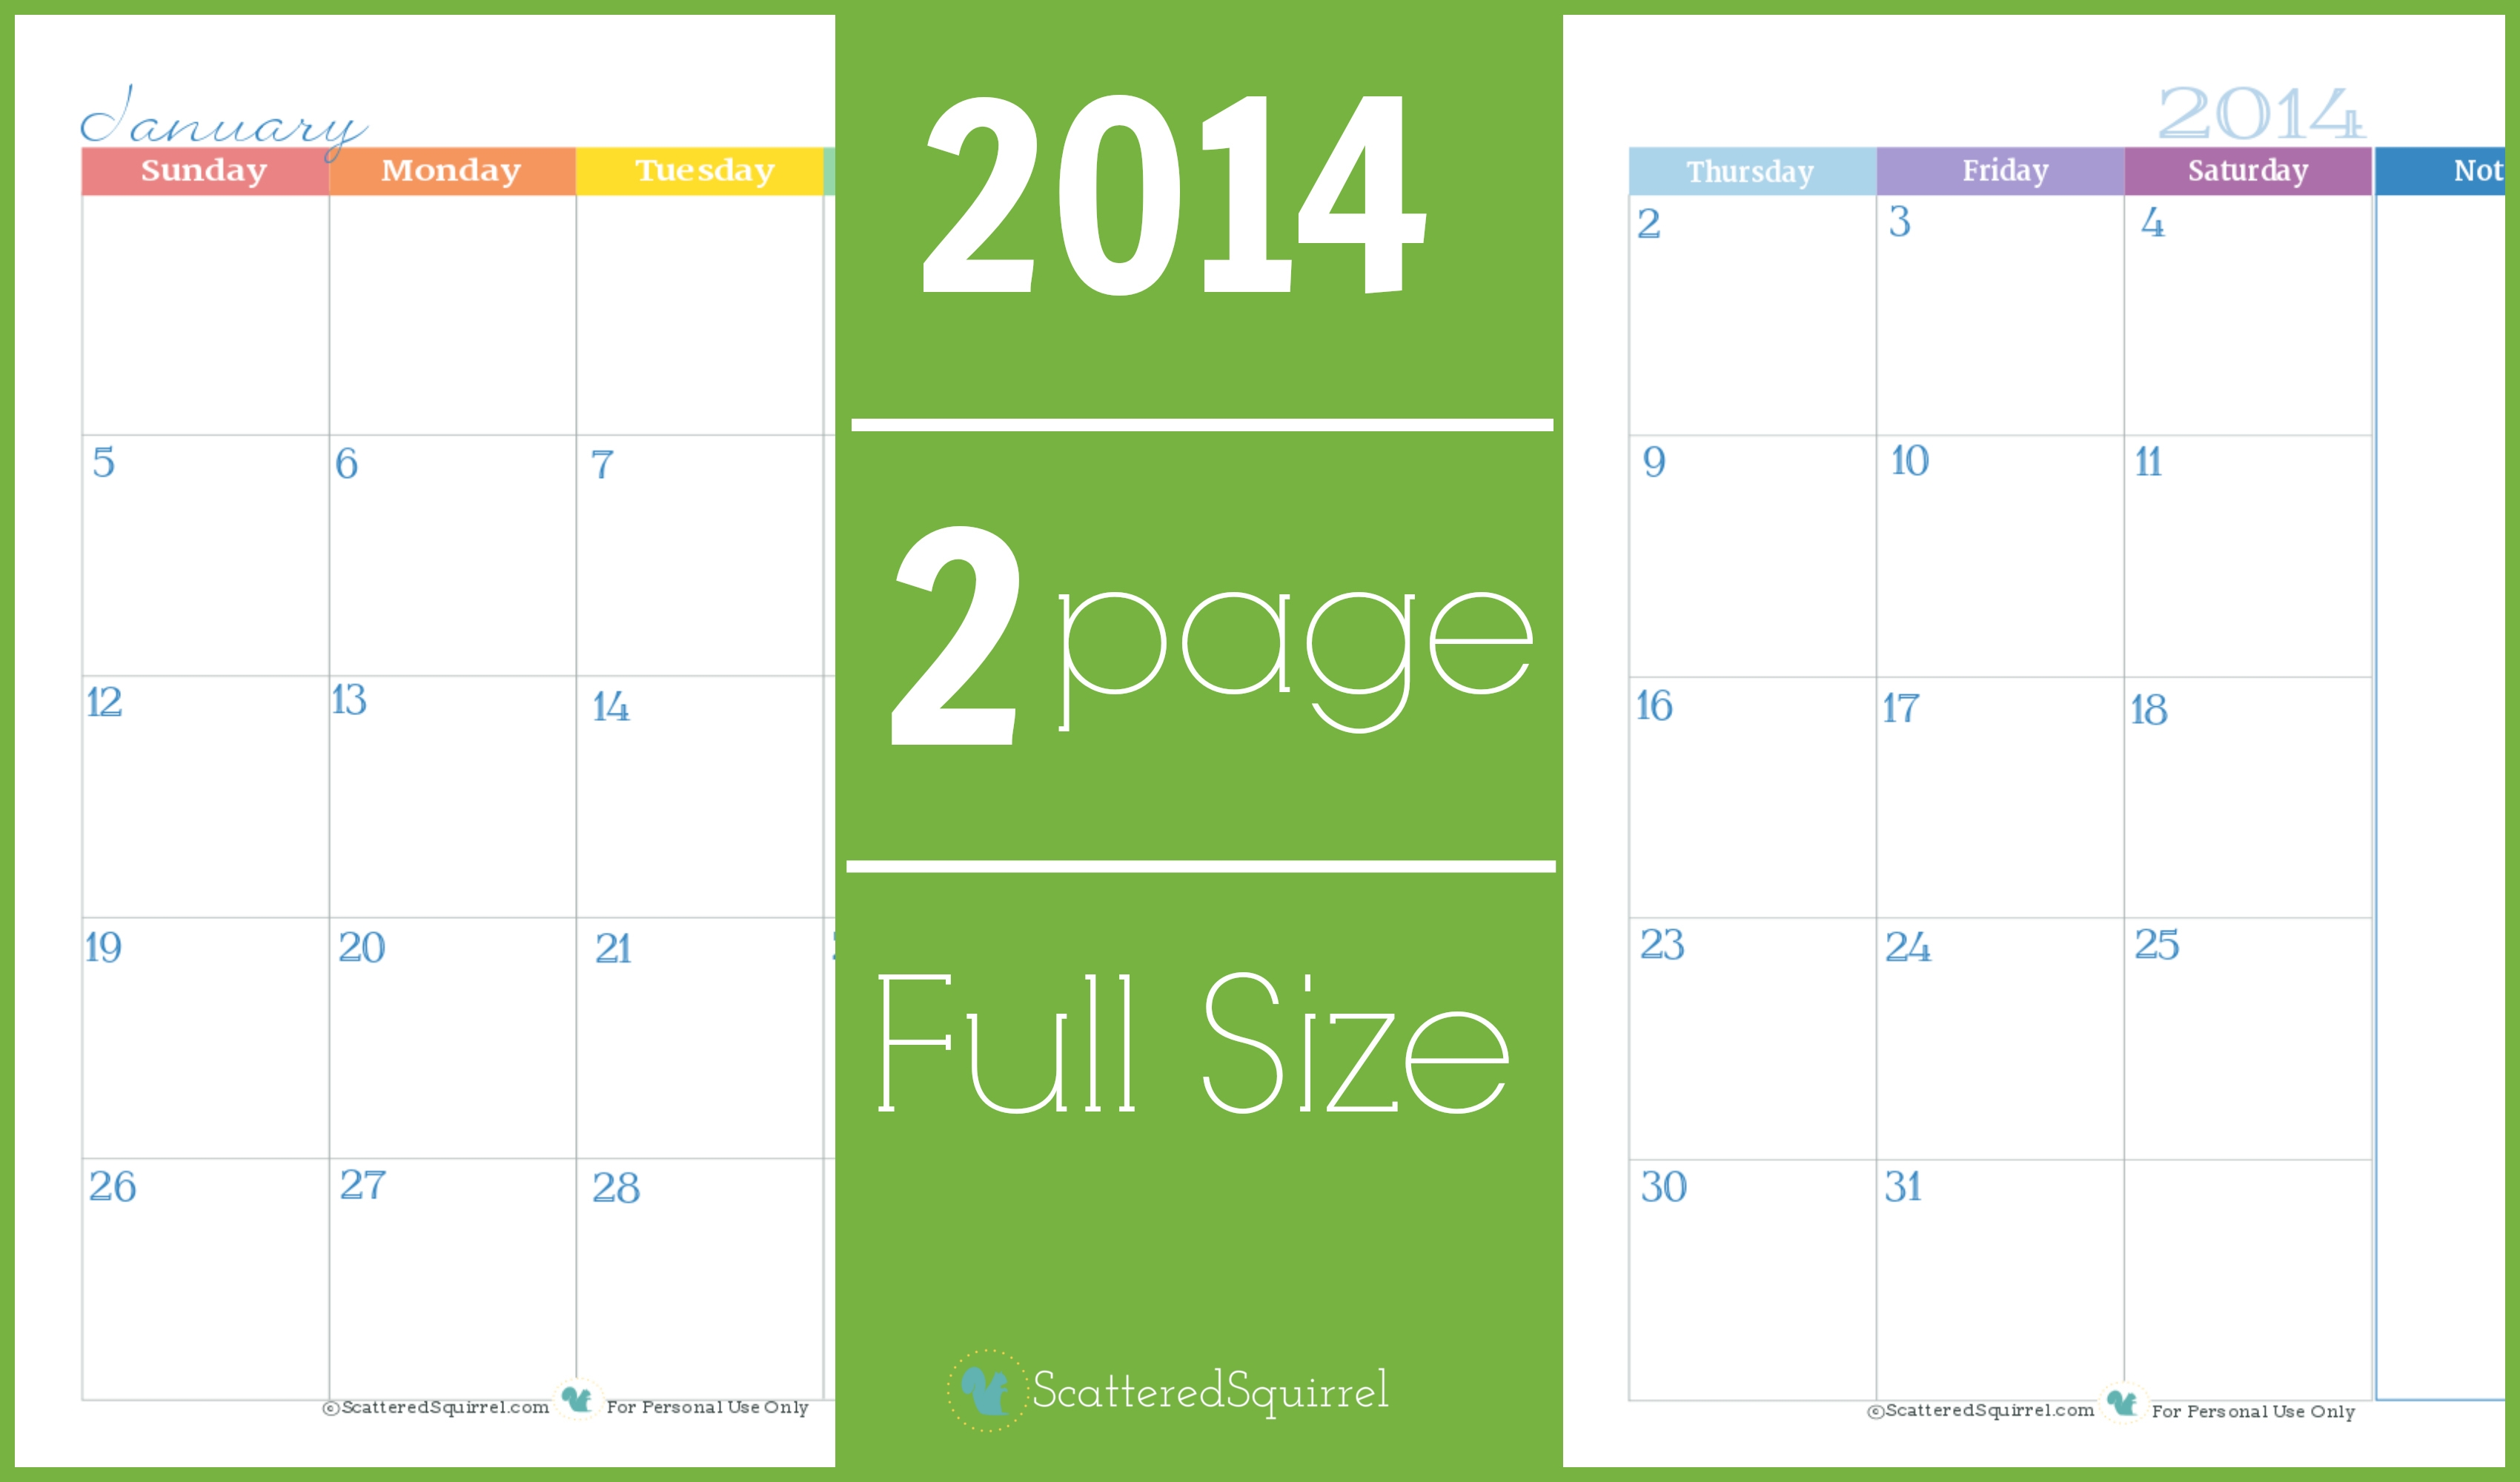 2014 Calendar Two Page Monthly Scattered Squirrel3abry